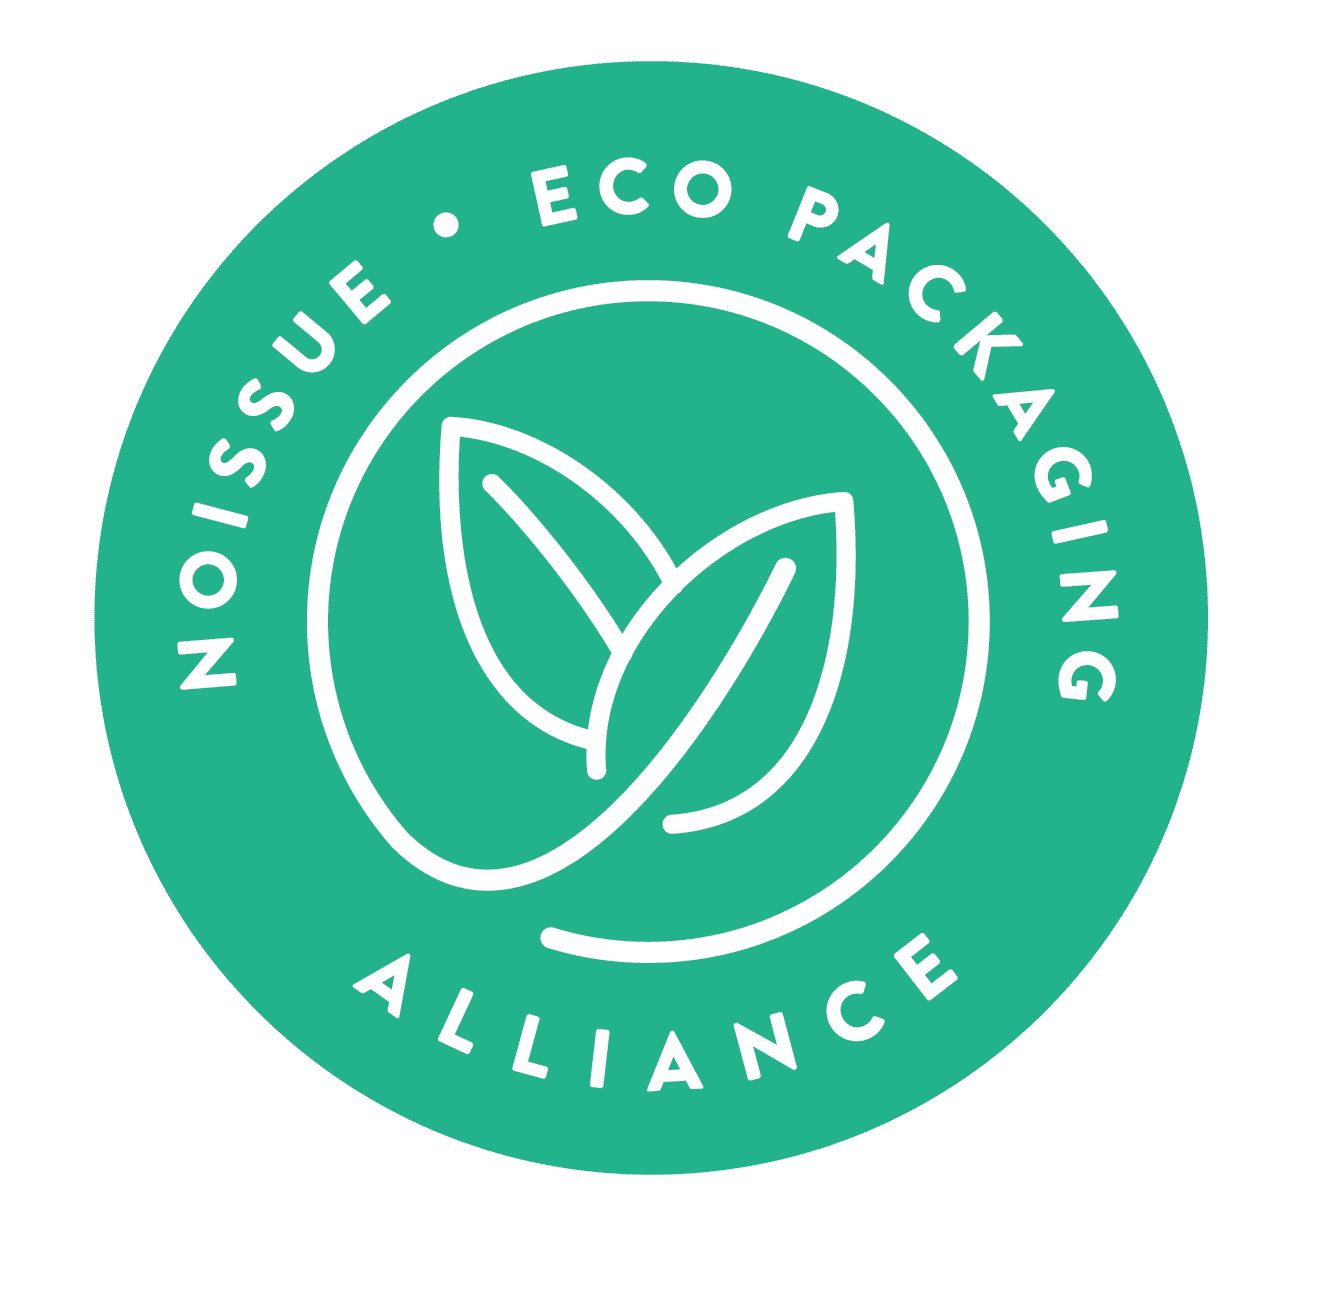 Eco Alliance website